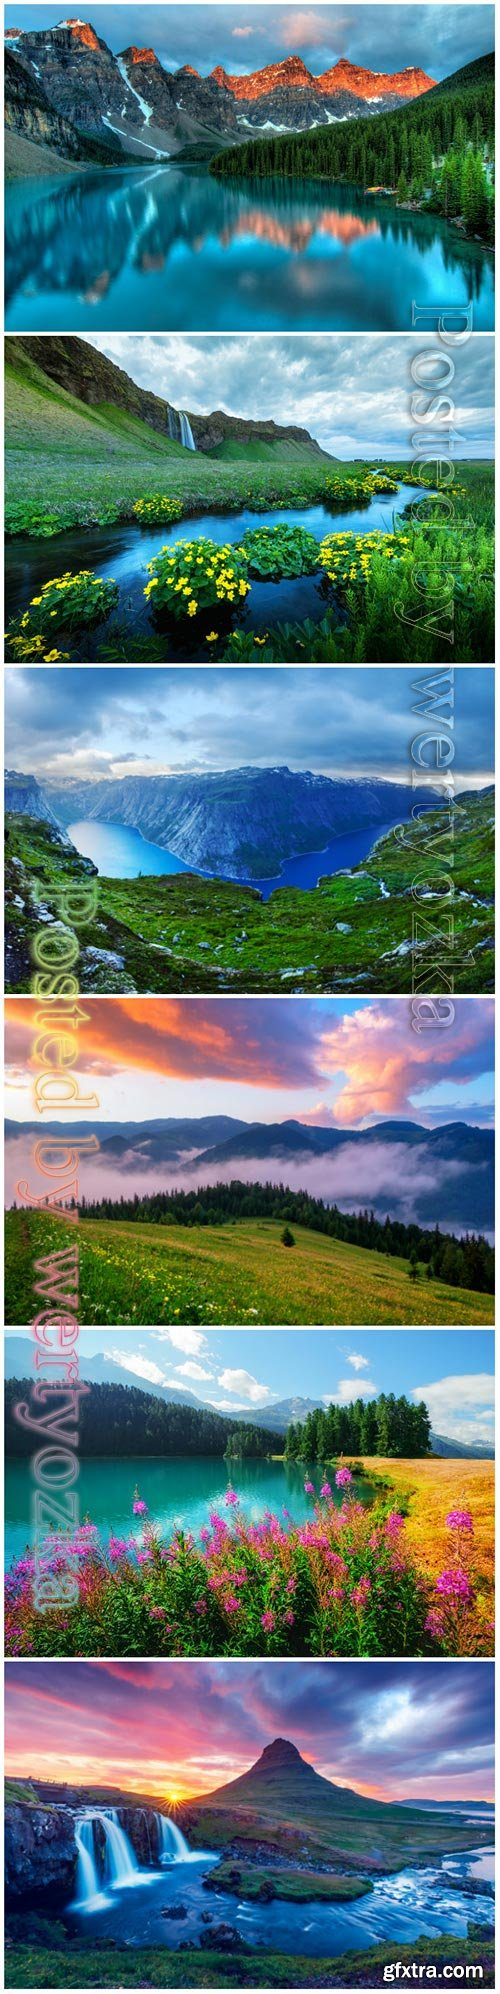 Nature, landscapes beautiful stock photo